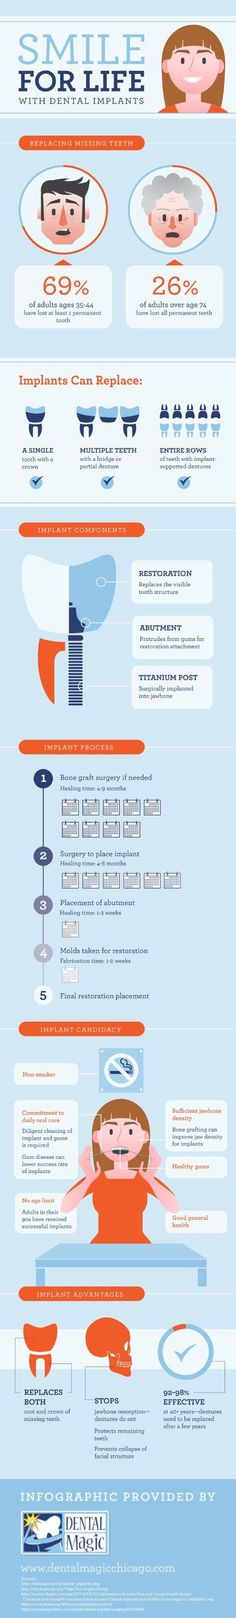 Here is a handy infographic to gain a quick insight of #dental implants